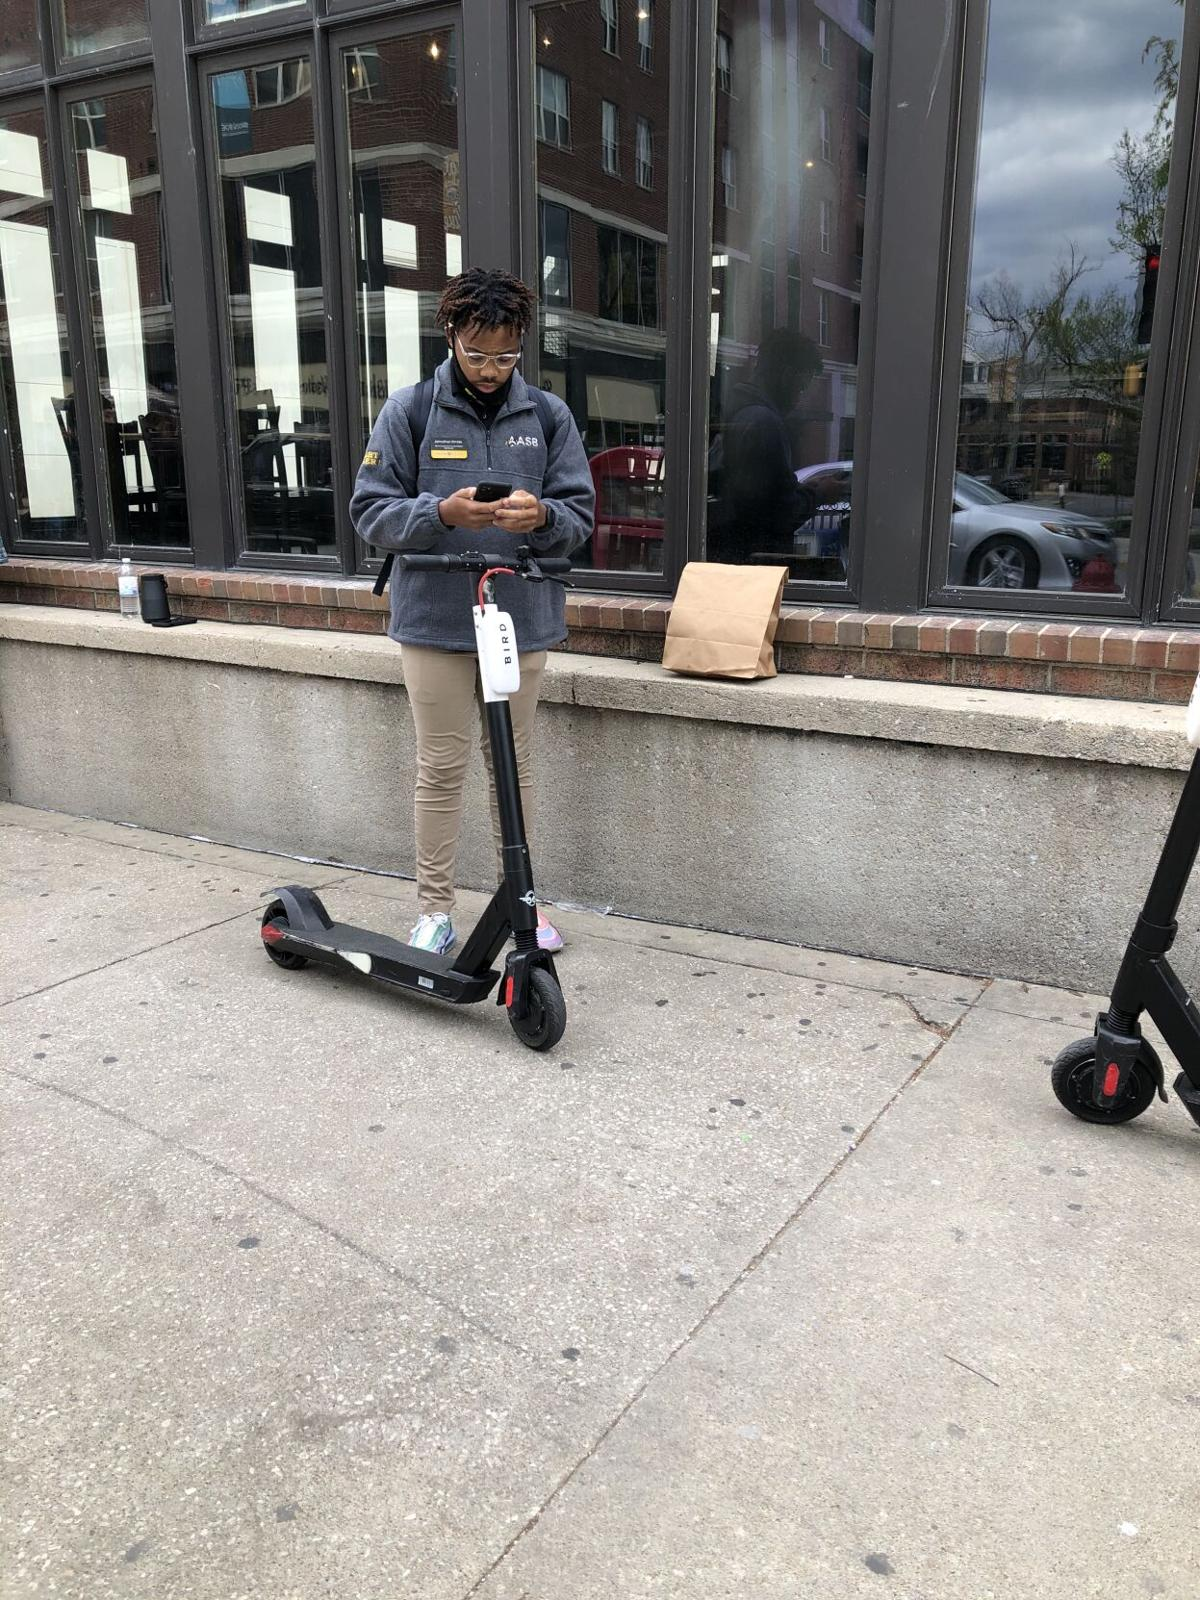 Bird Scooters' return may impact businesses